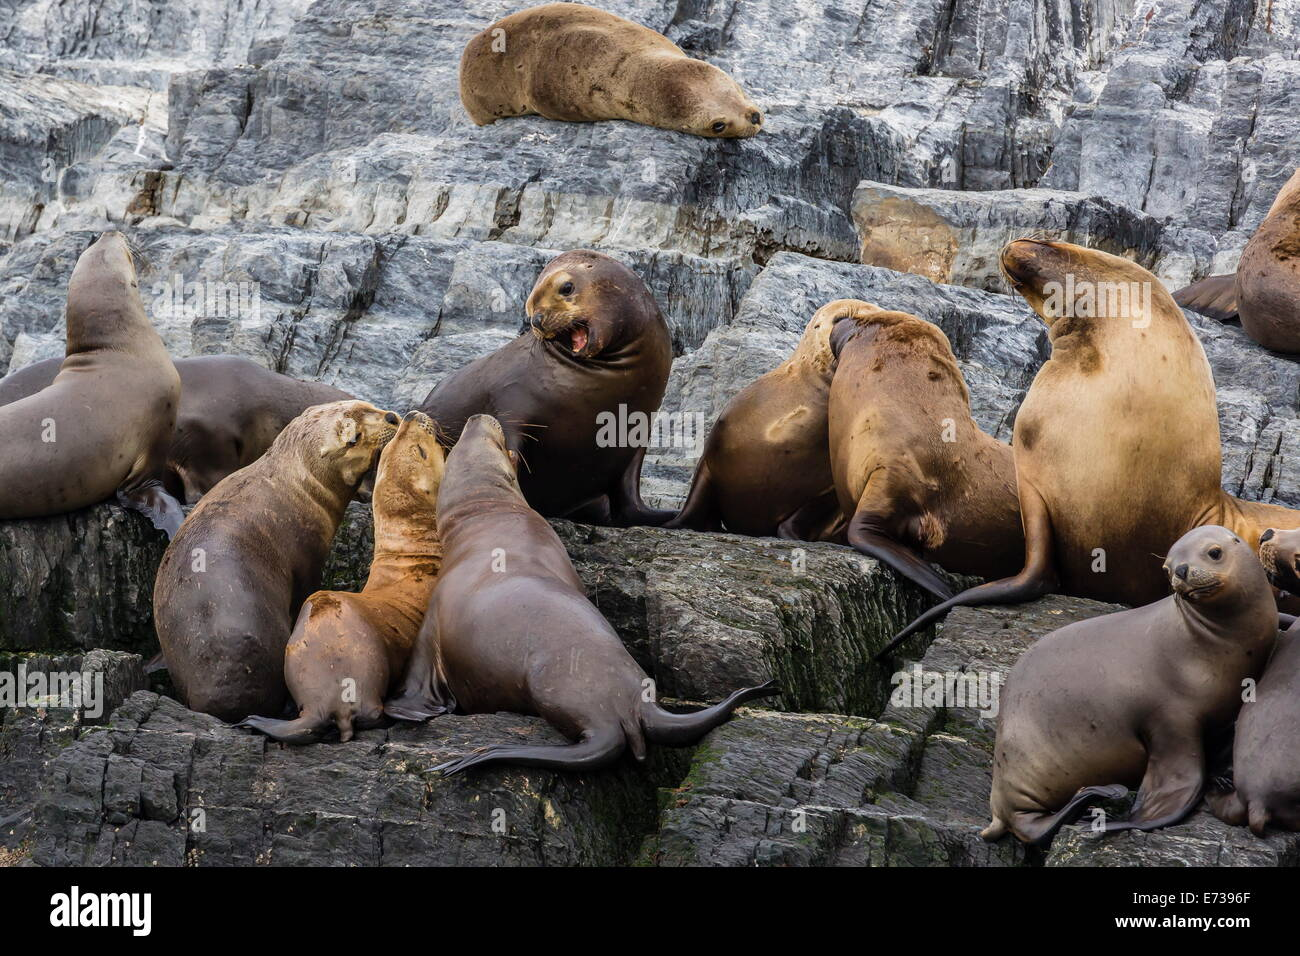 South American sea lions in breeding colony hauled out on small islets just outside Ushuaia, Beagle Channel, Argentina - Stock Image